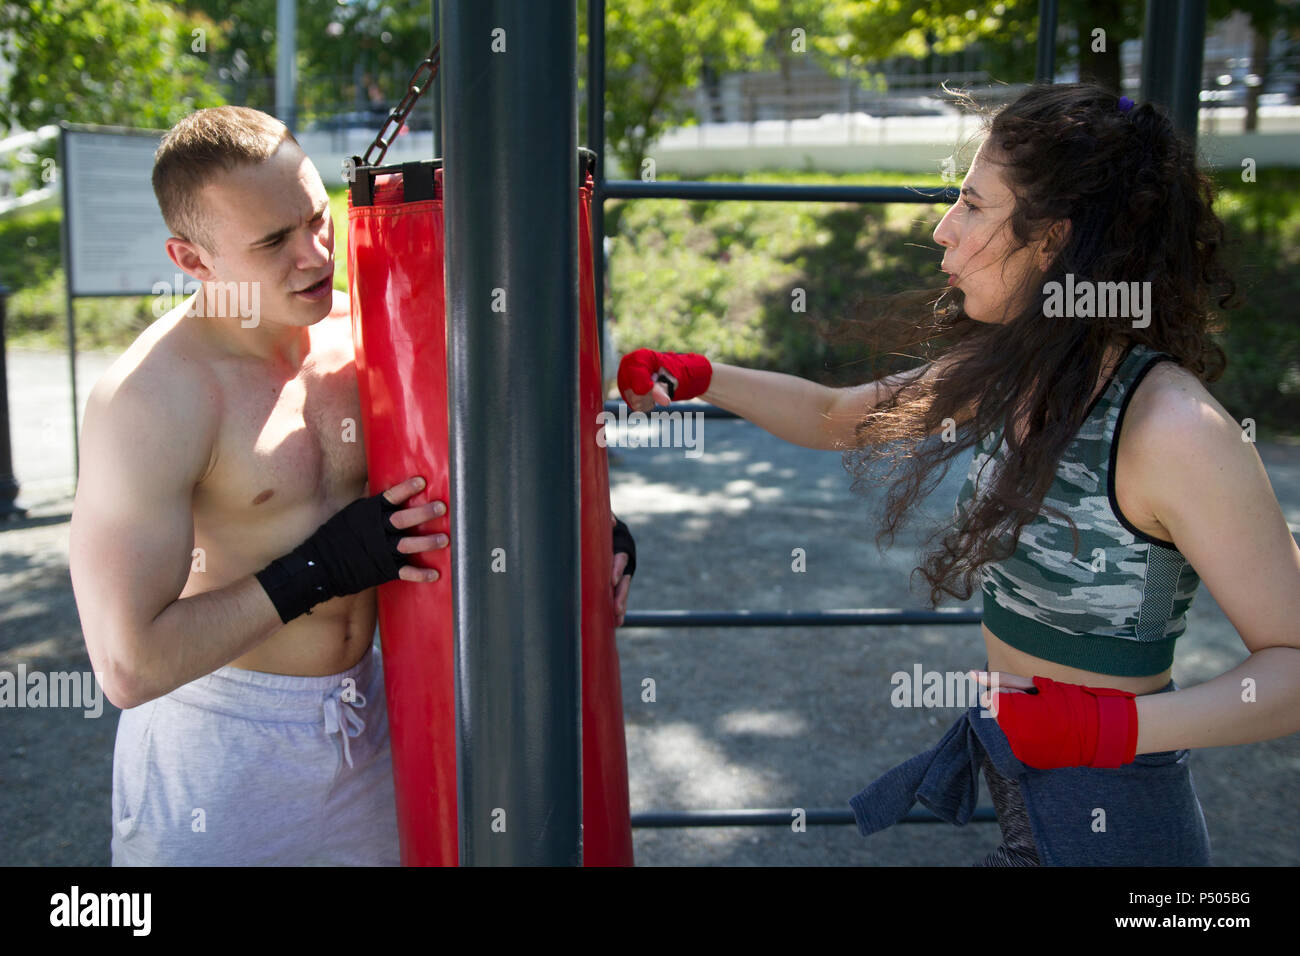 Muscular man holds punching bag to young woman engaged in boxing in summer park - Stock Image